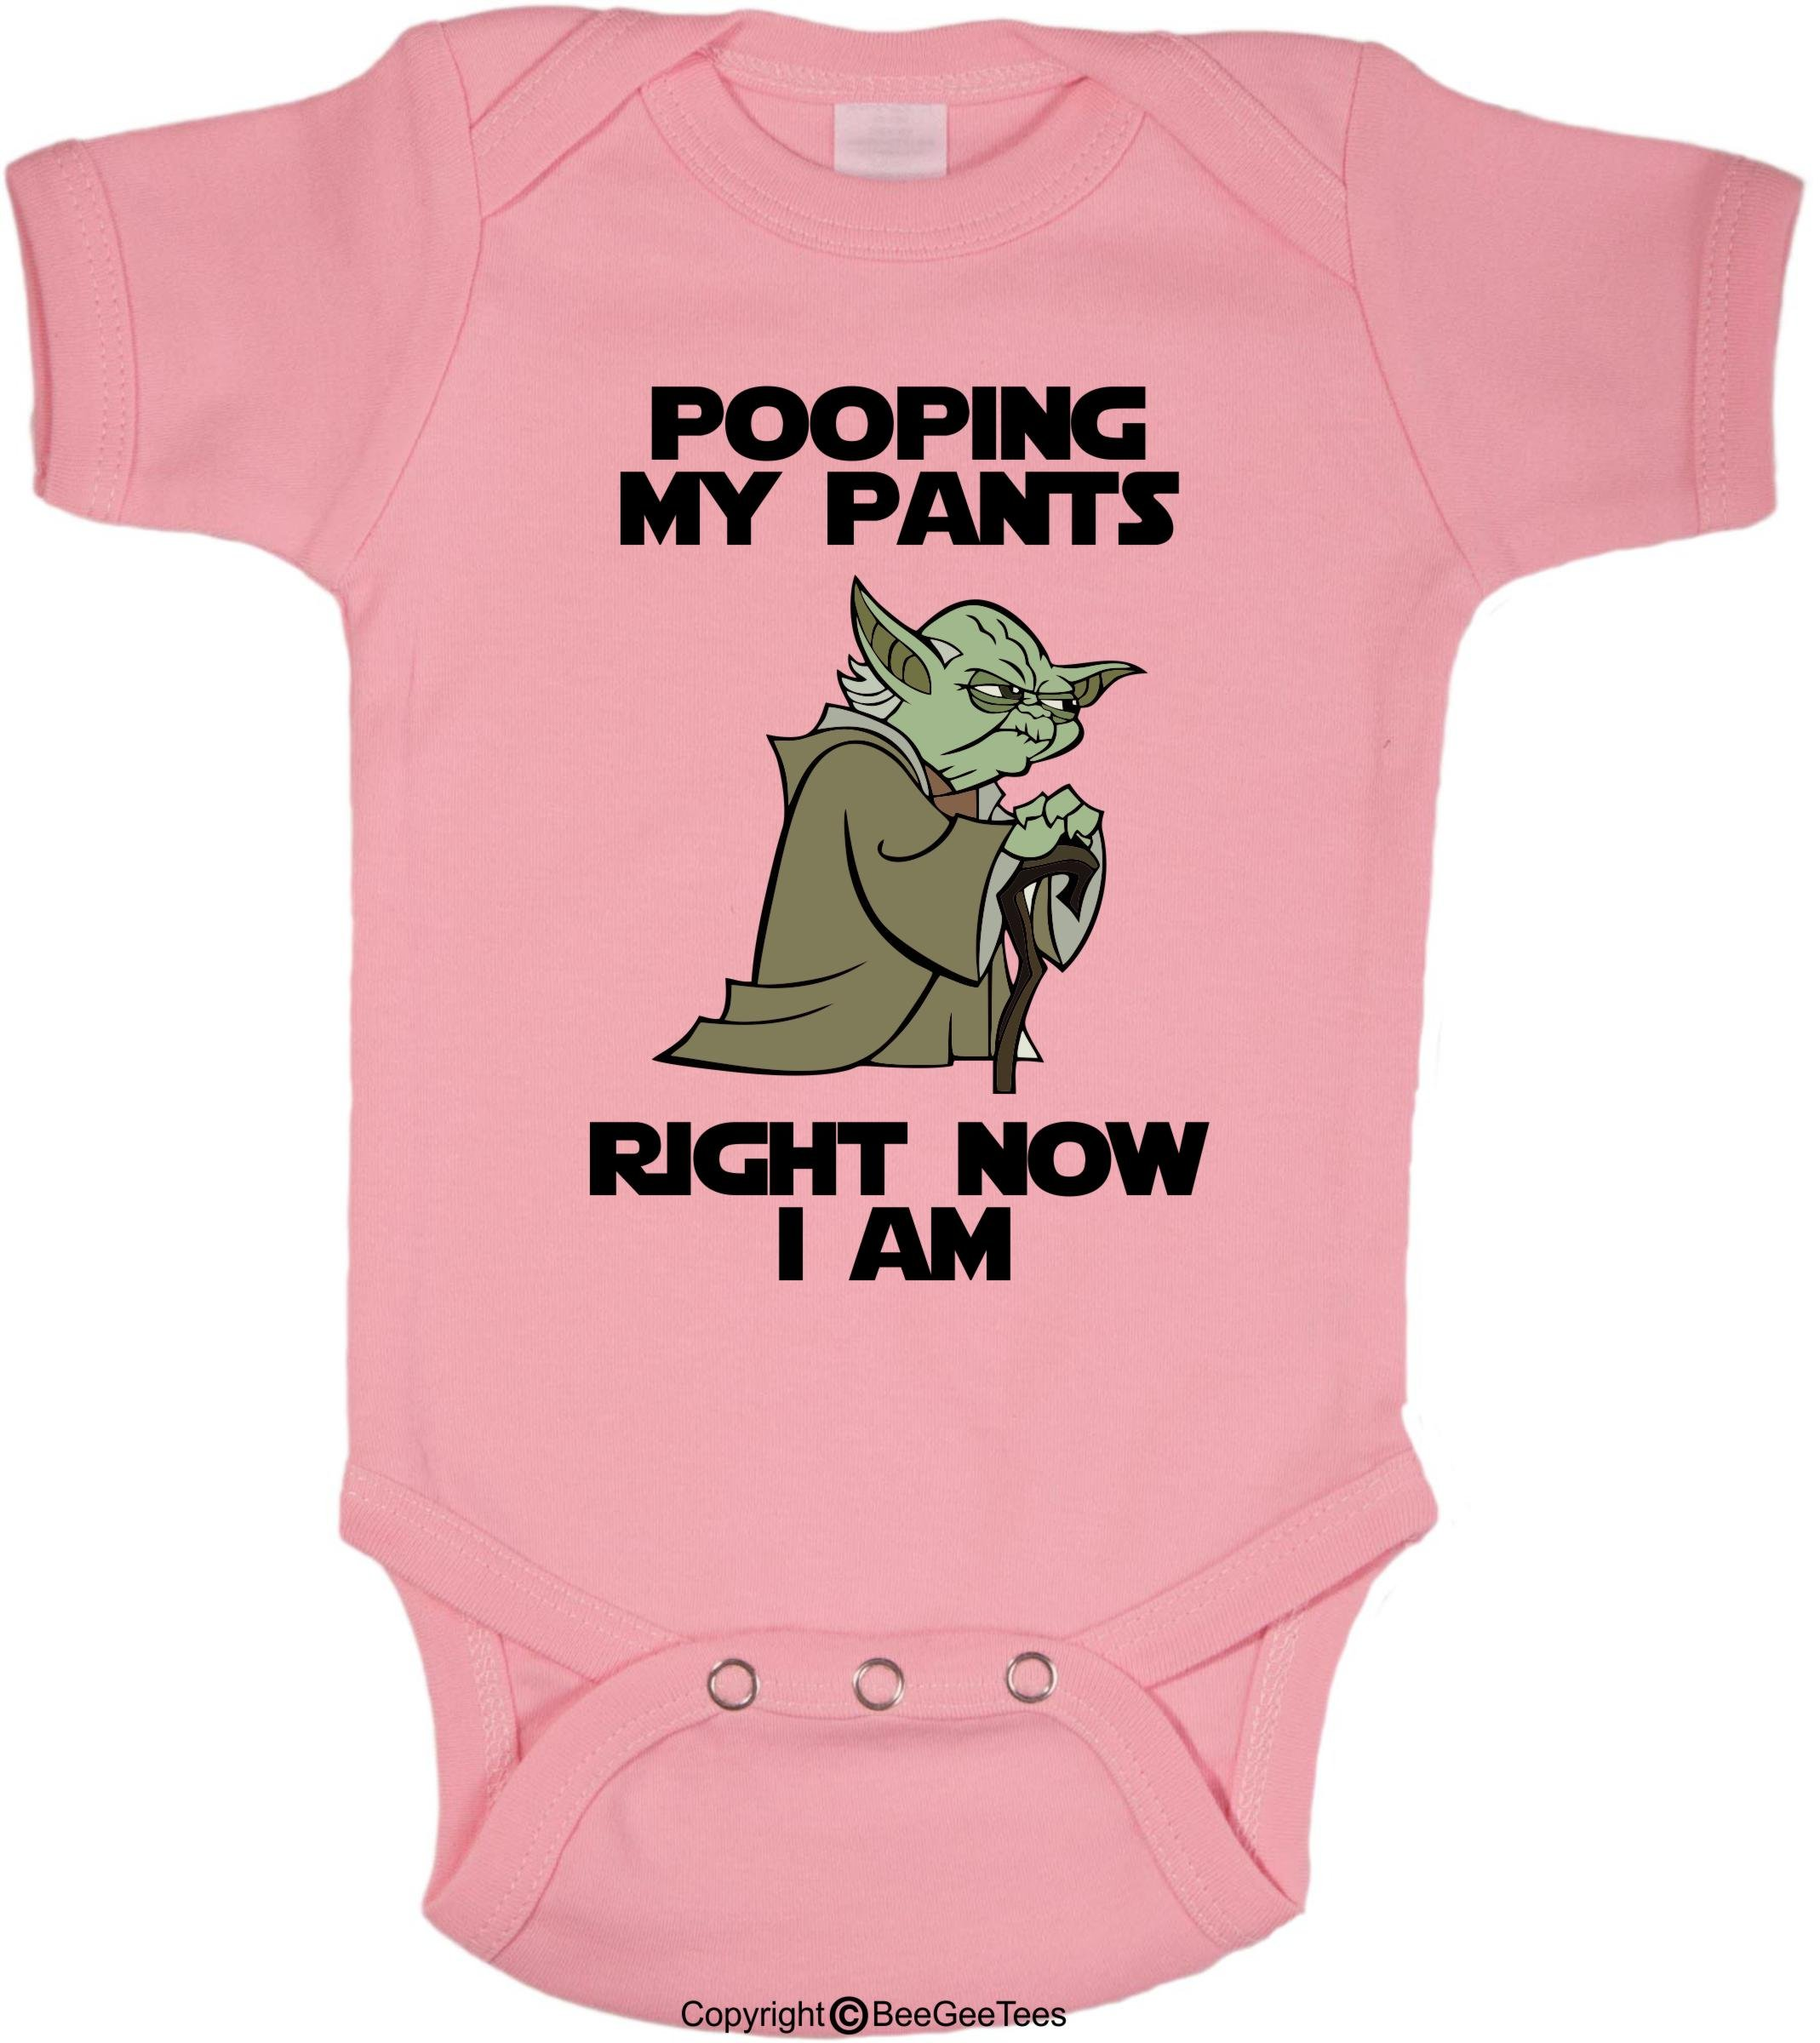 4c679b00d BeeGeeTees Pooping My Pants Right Now I Am Funny Star Wars Yoda Onesie  (Newborn, Pink)